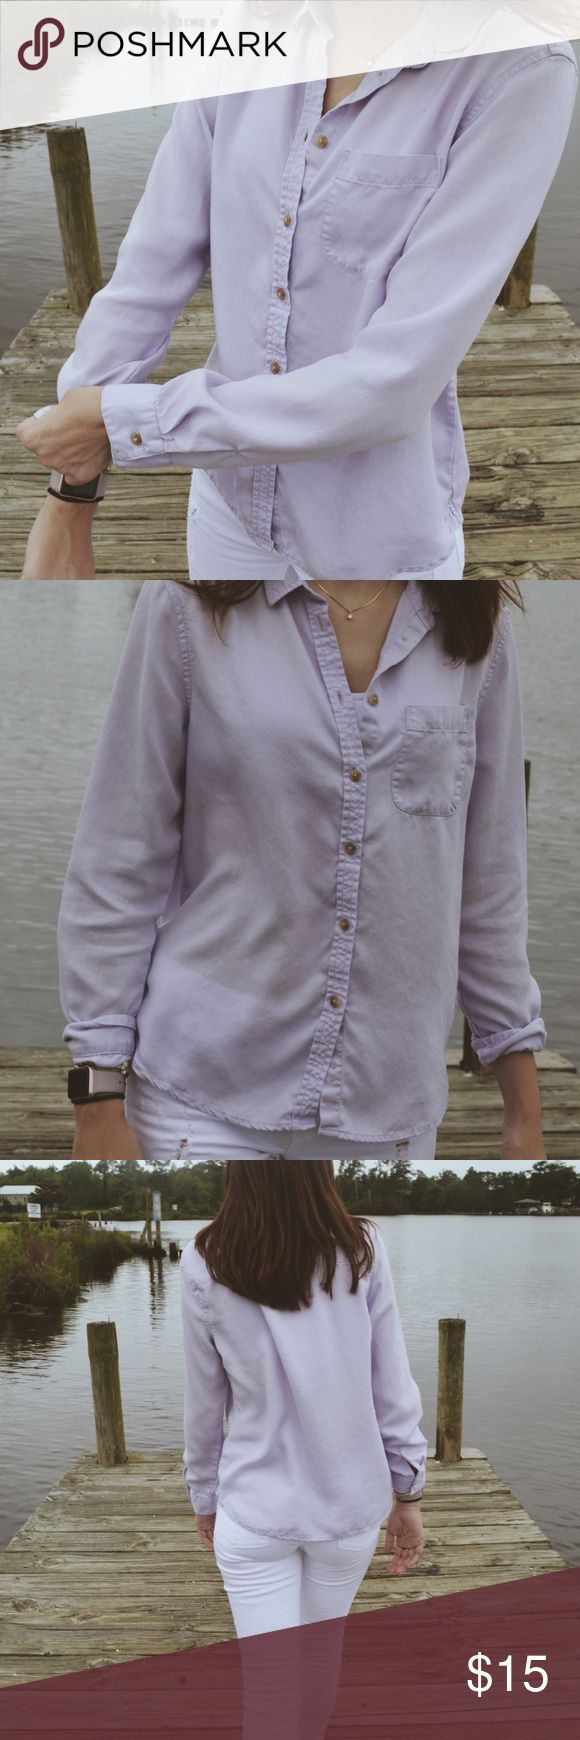 Selling this Lilac American Eagle Button Up Oxford Top on Poshmark! My username is: mtrobaugh. #shopmycloset #poshmark #fashion #shopping #style #forsale #American Eagle Outfitters #Tops